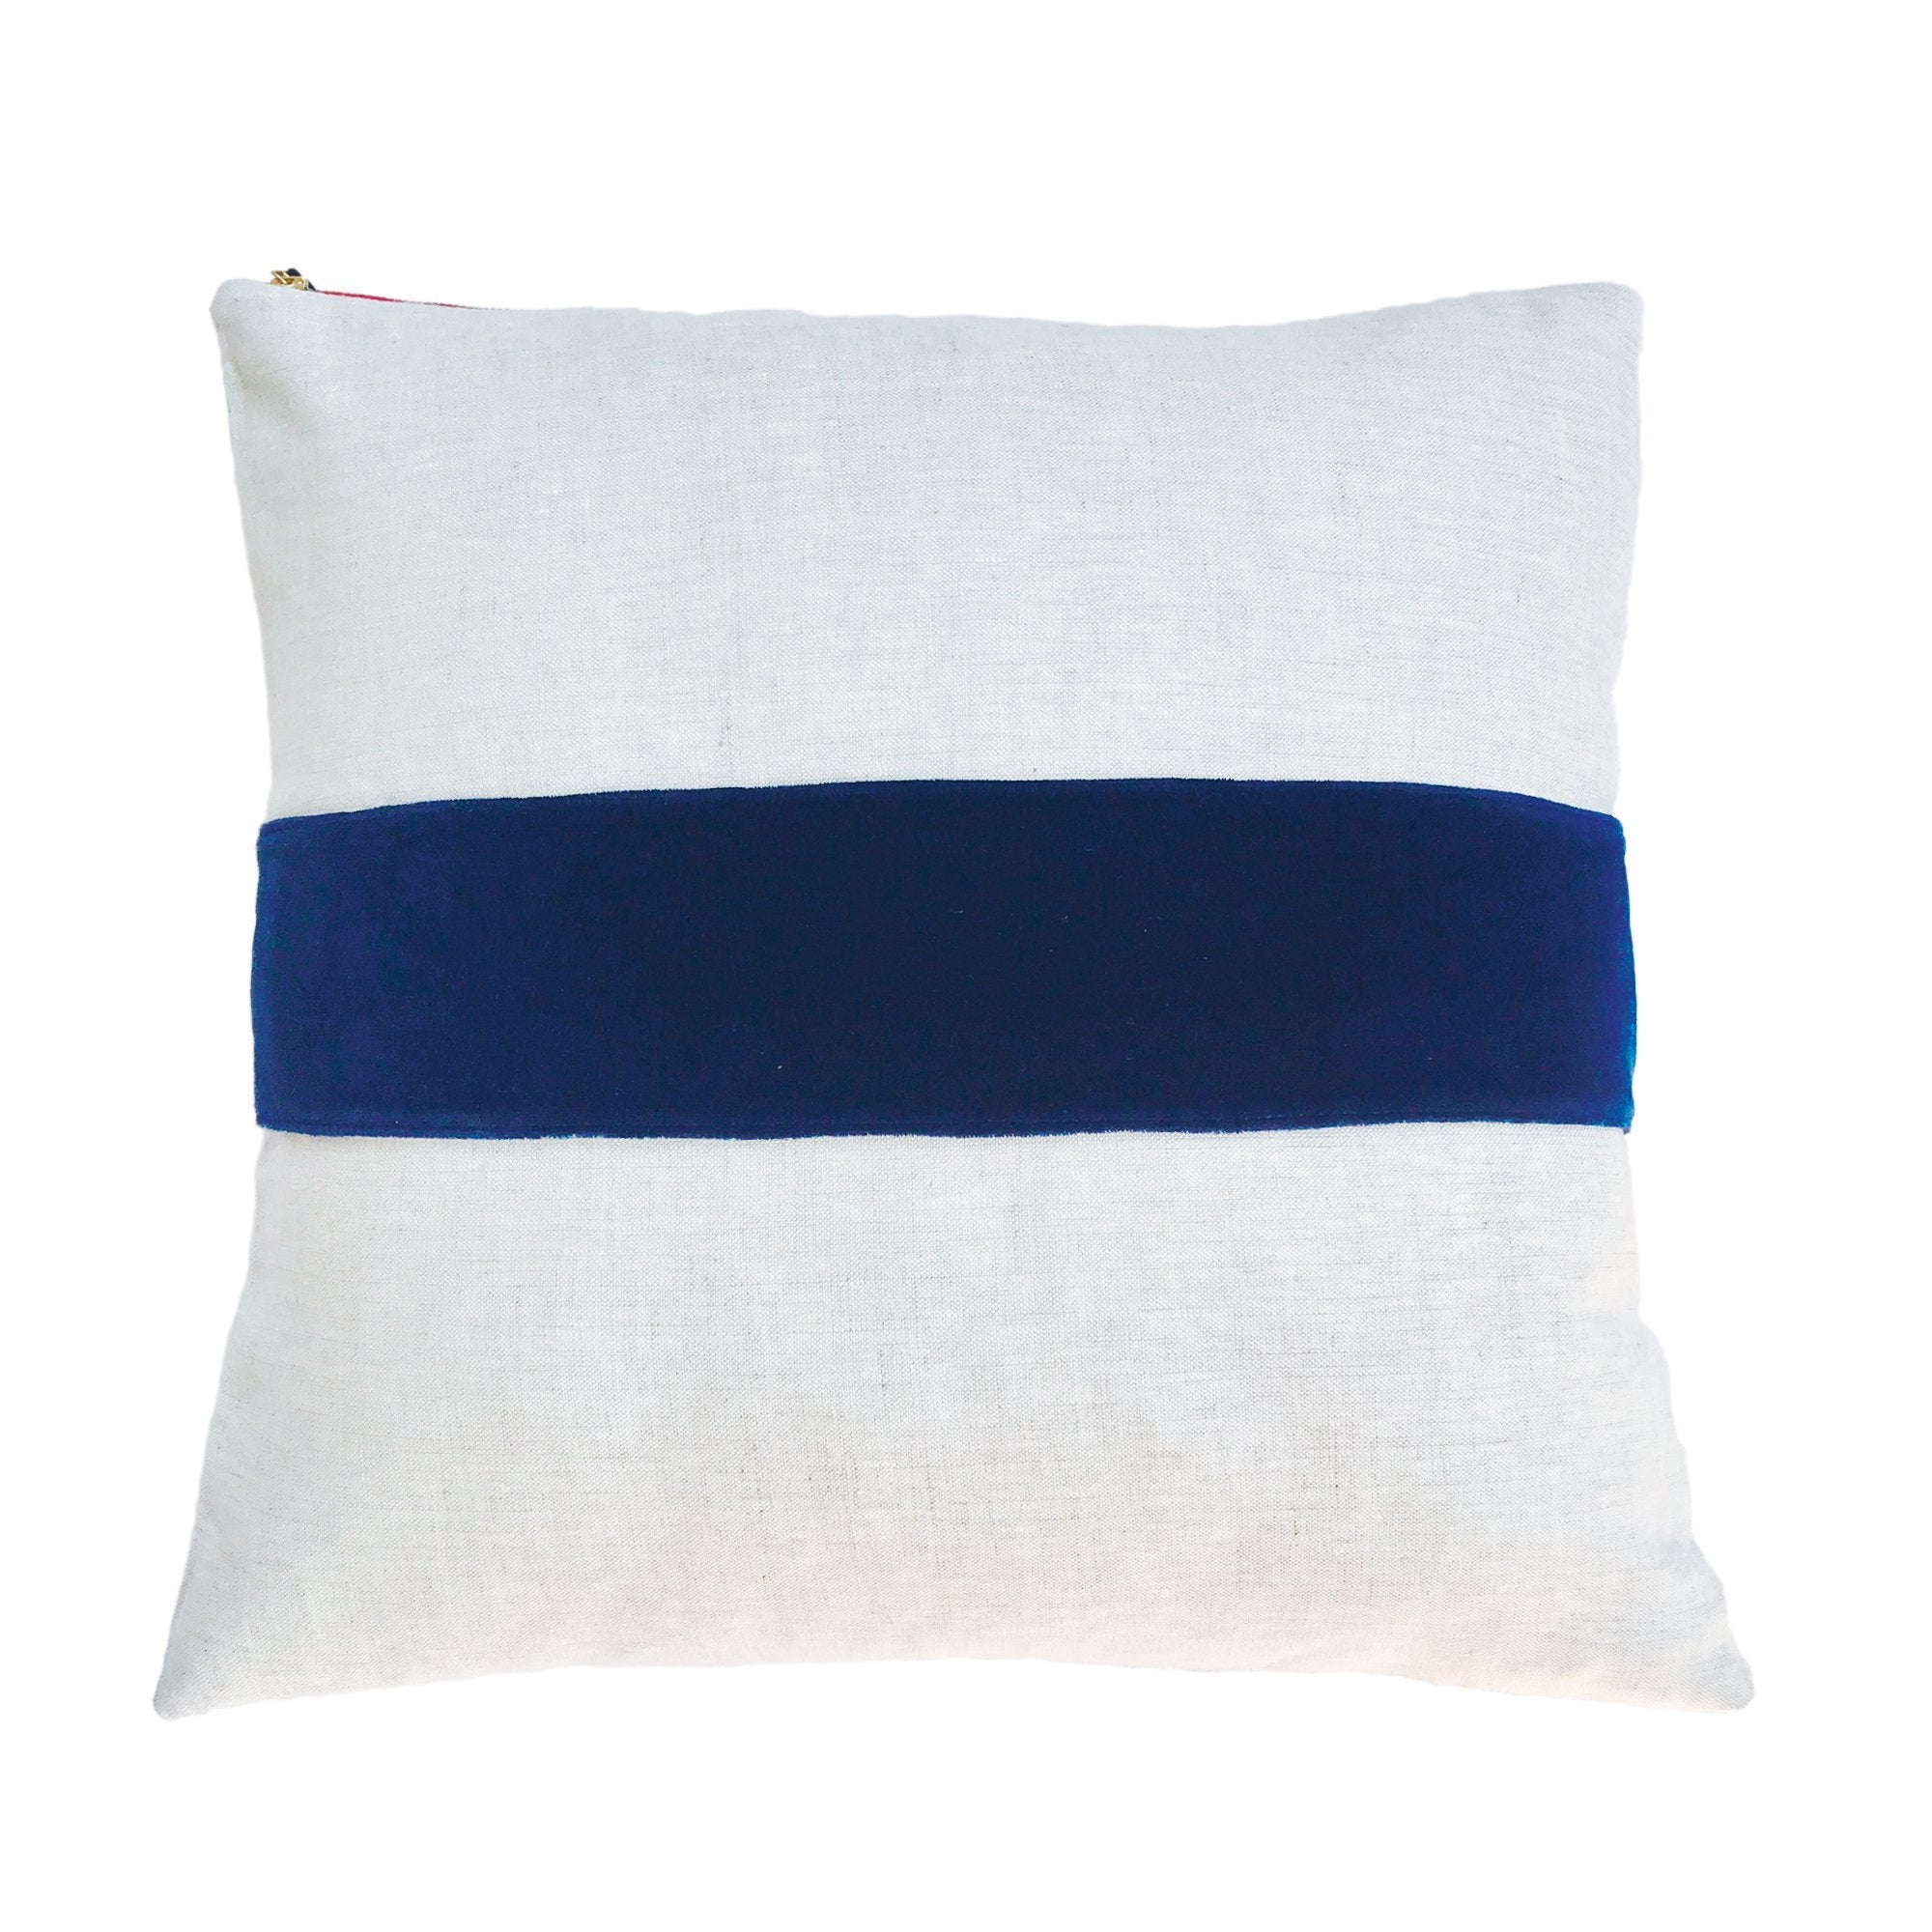 NAVY VELVET BAND LINEN PILLOW